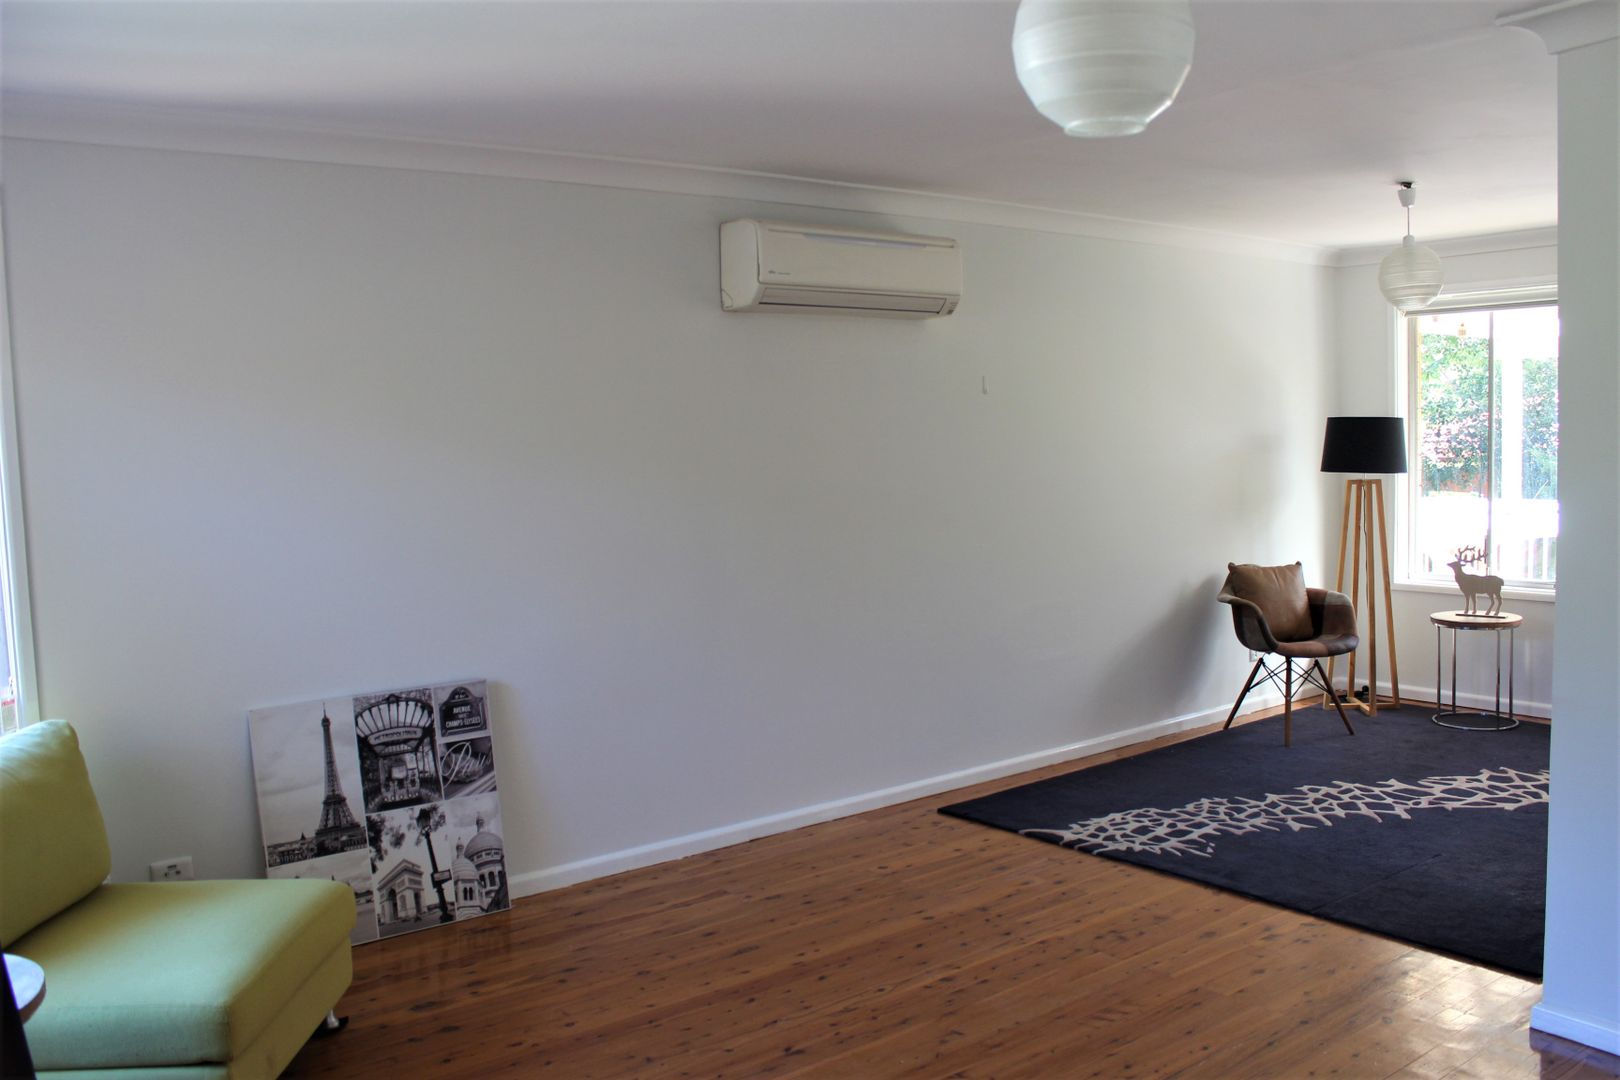 3 Gary Street, Castle Hill NSW 2154, Image 1